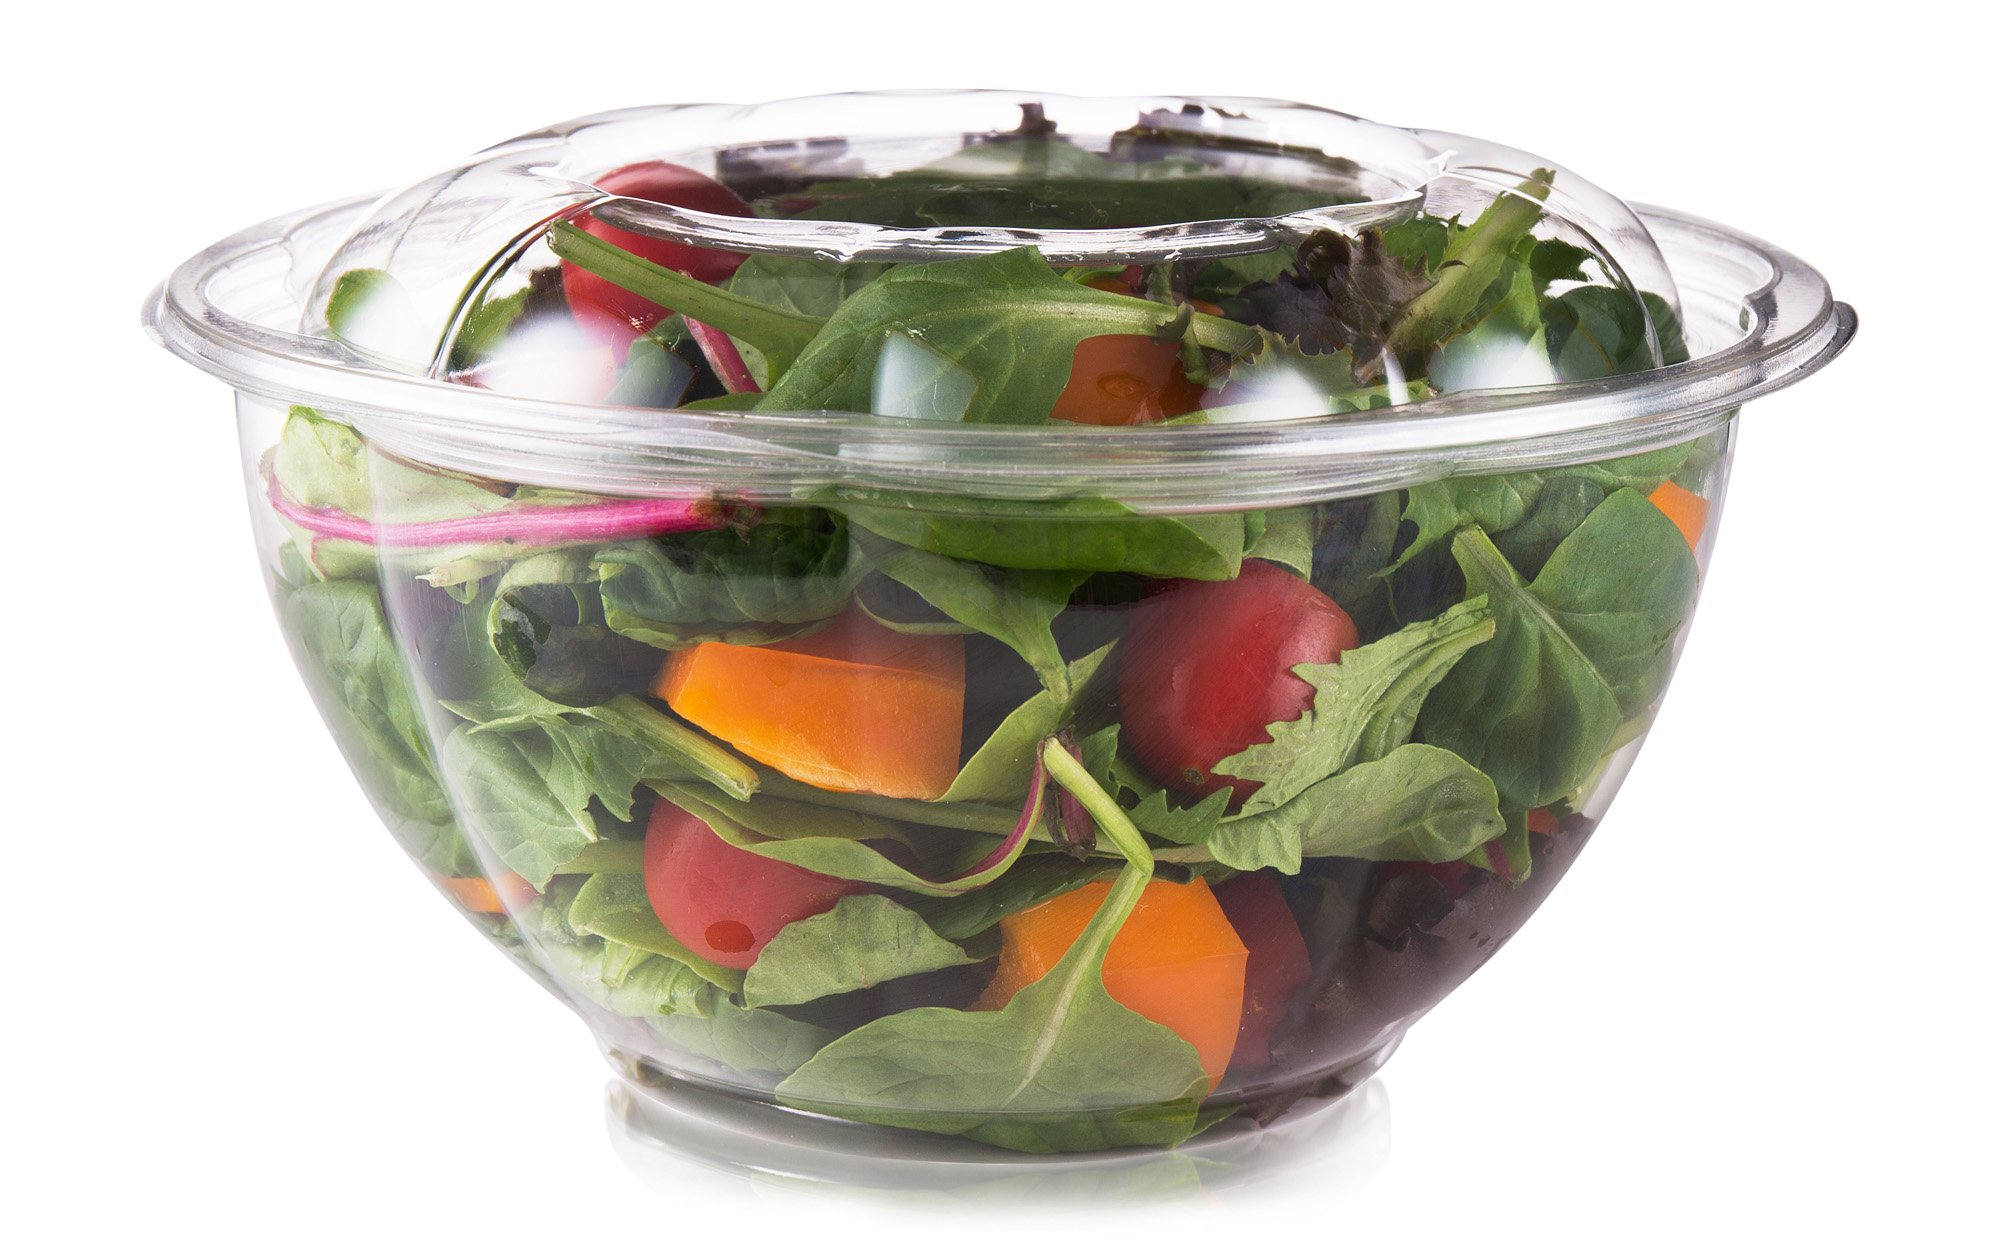 Disposable Salad Bowls With Lids 32 oz (Pack Of 50) By PracticAid: Clear Plastic Containers To Go, Airtight And Leak-Proof Sealing For Fresh Food, Eco-Friendly Biodegradable PET, Stack-able Design